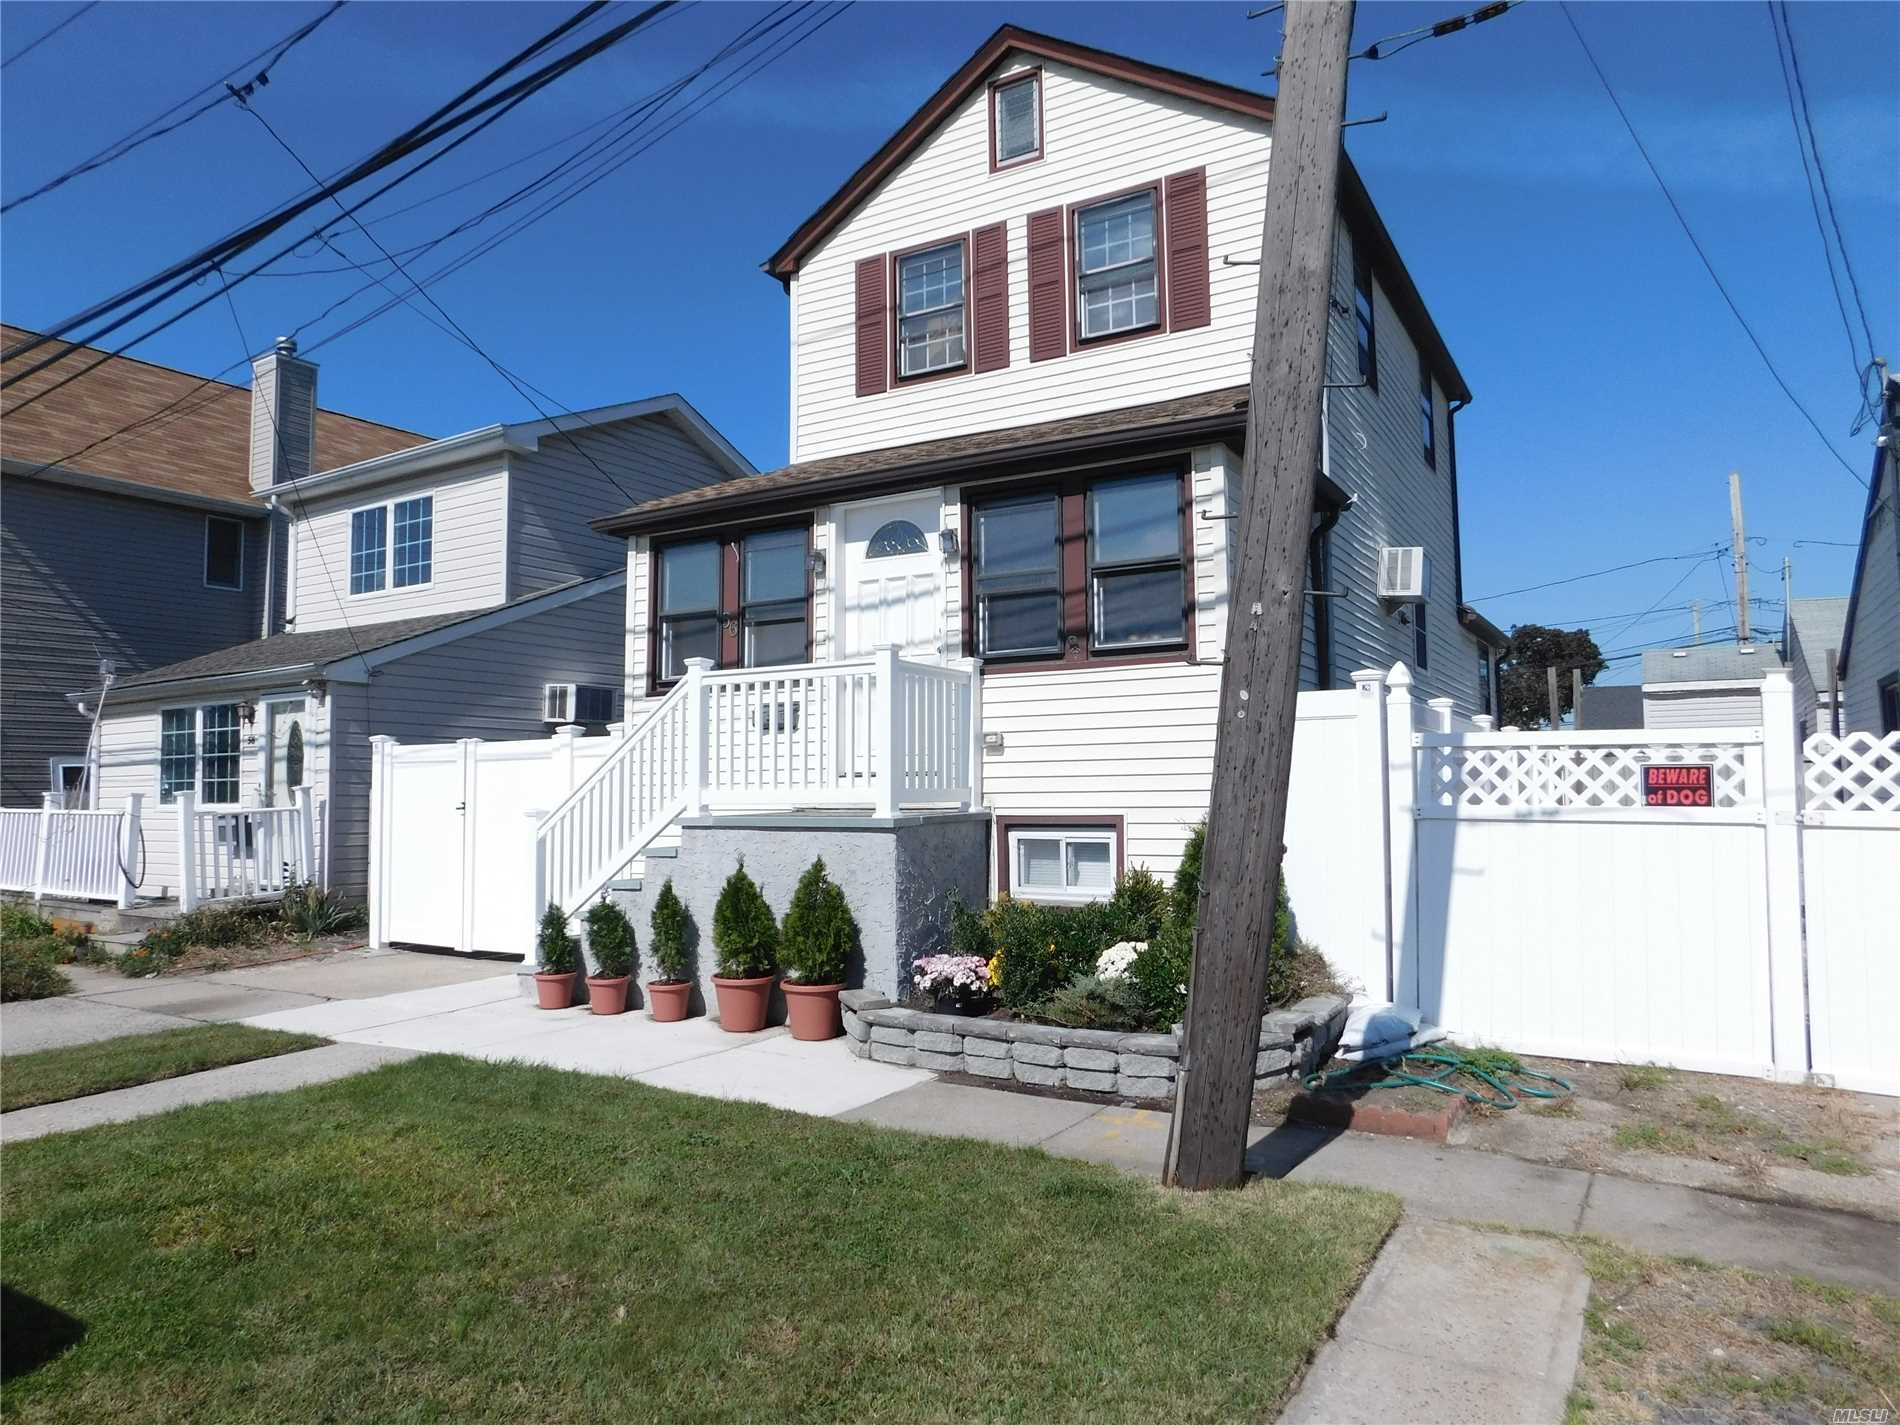 Renovated Colonial W/ Large Private Yard In Beautiful E. Rockaway! House Features Newer Kitchen W/ Ss Appls. New Bathroom, High Ceilings W/ Lots Of Natural Sunlight, 5 Year Old Gas Heat Syst/1-Layer Roof/Electric/ Ac's, Igs, New Pvc Fence, Prof Landscaped, 2 Attics For Storage, Full Fin-Basement W/Co & Ose. Only $8317 Taxes With Star! No Village Taxes. Overnight Street Parking!